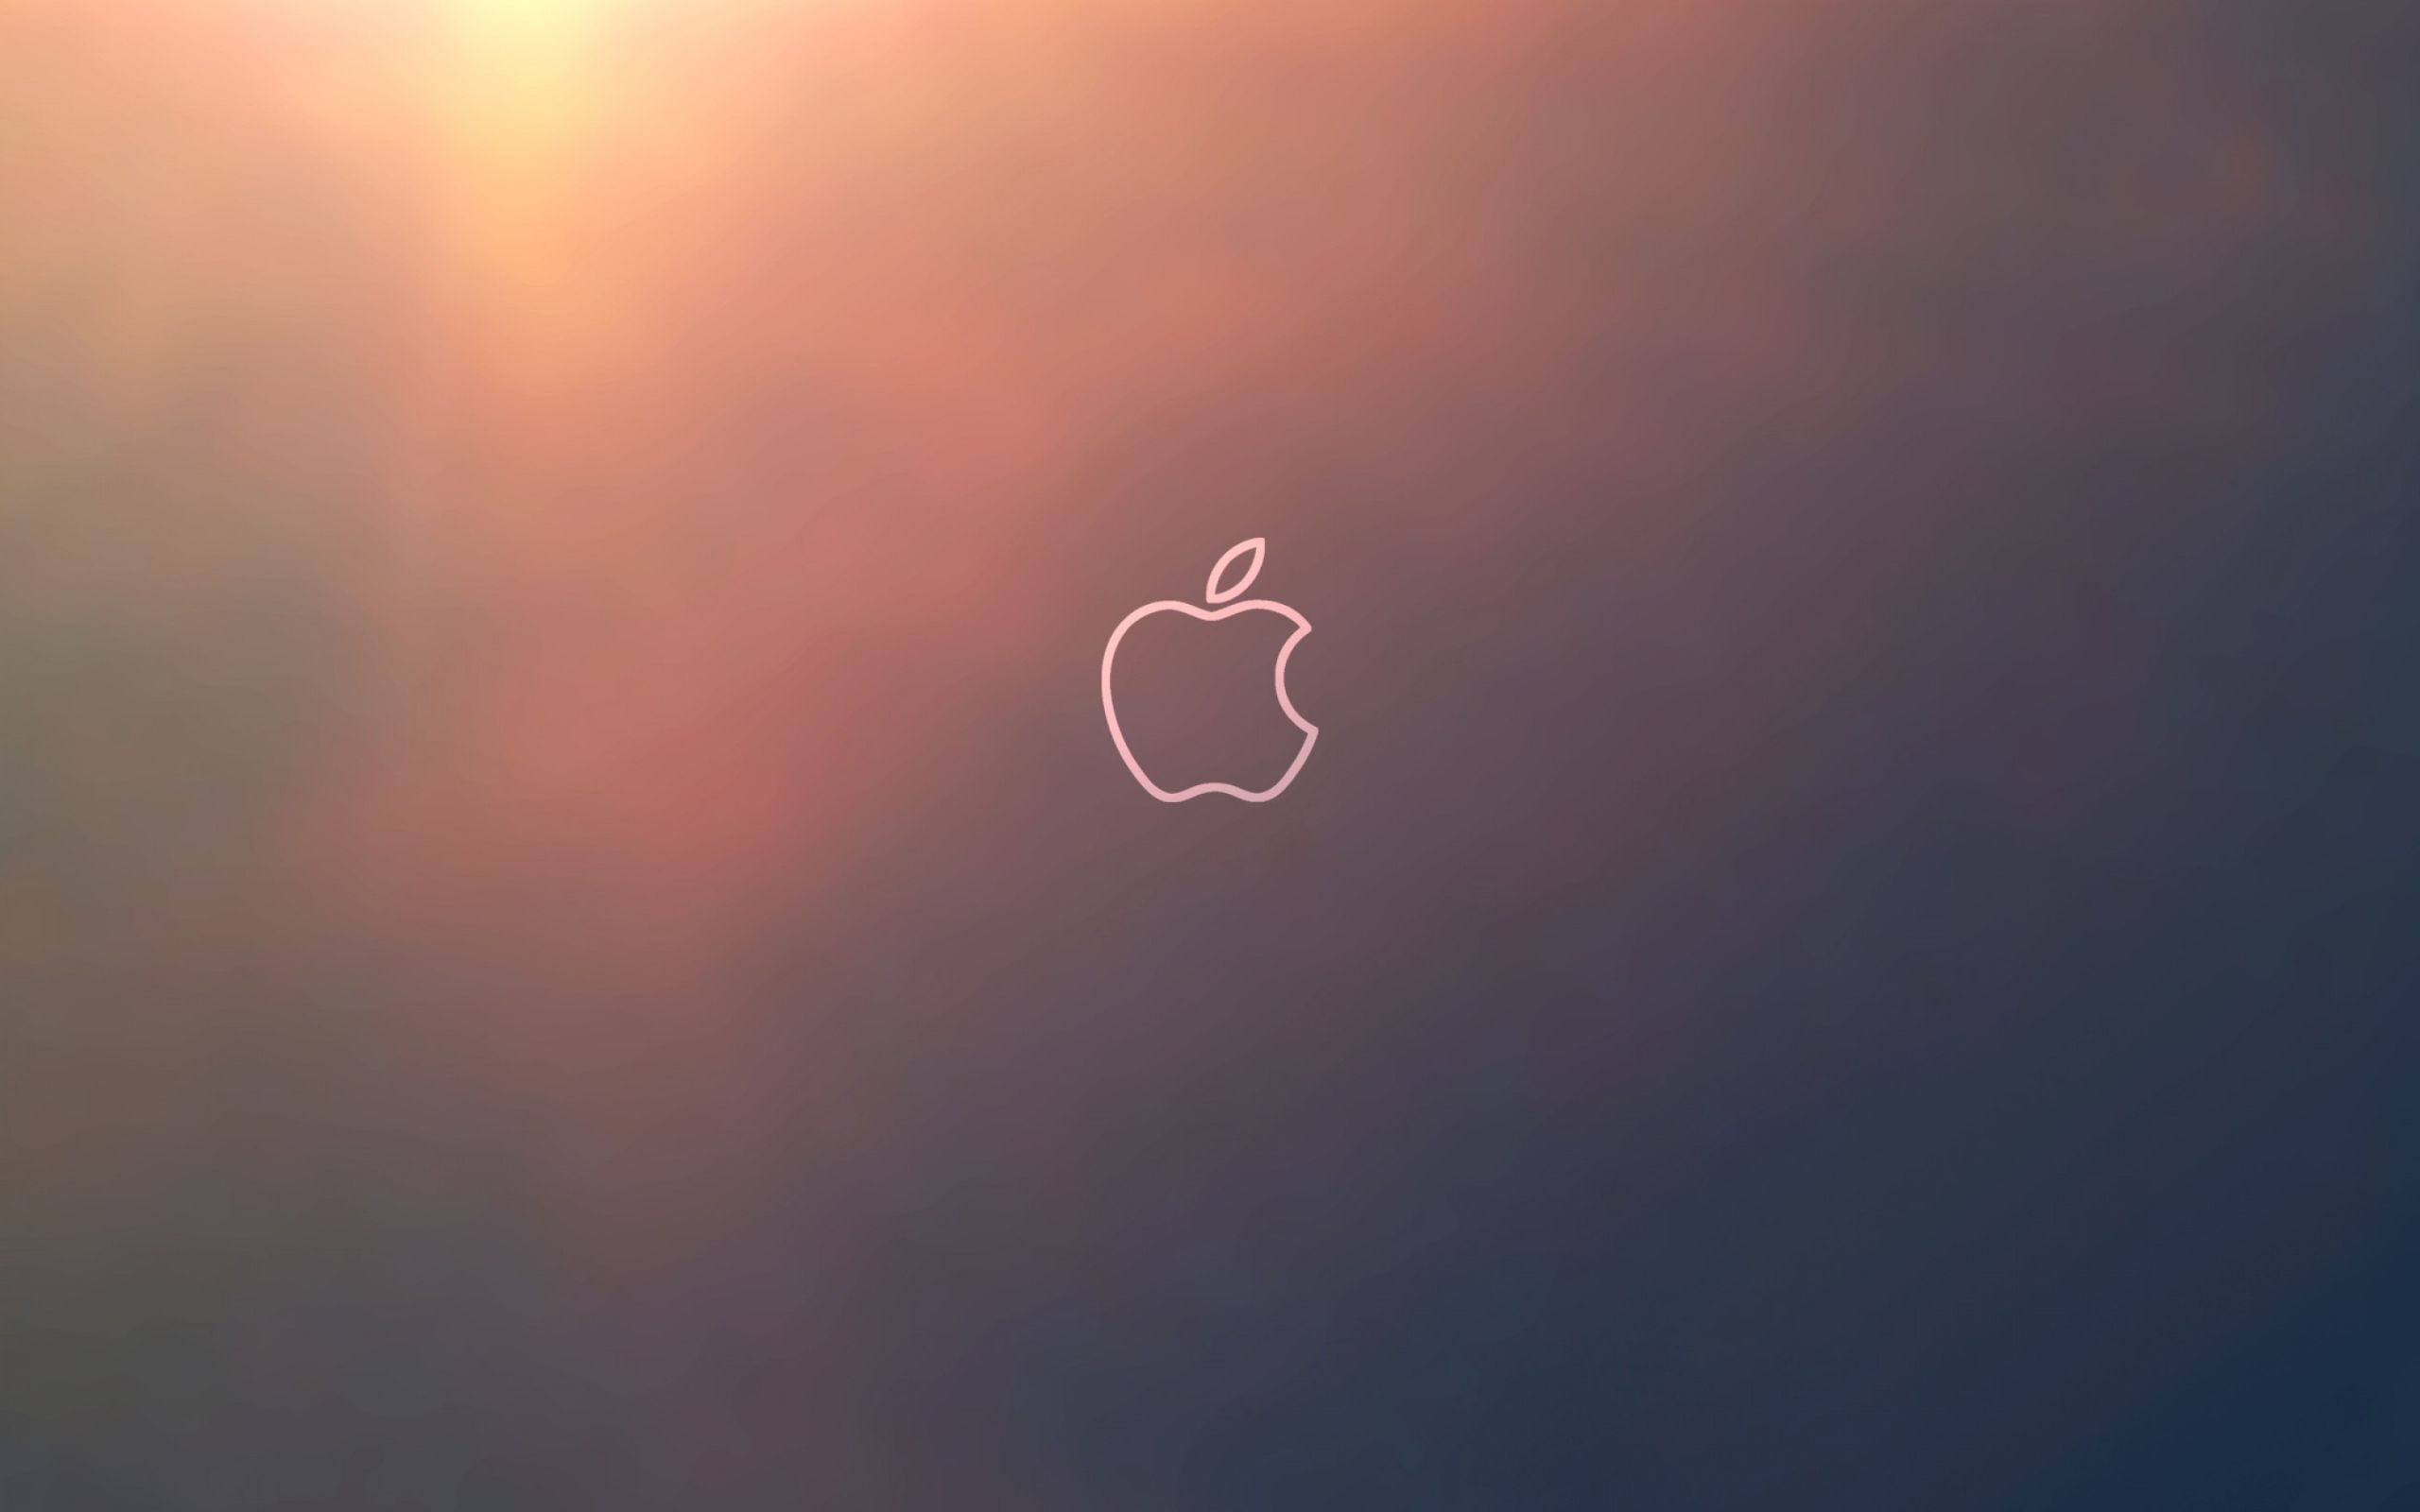 apple retina wallpaper mac imac iphone ipad | nicolett | pinterest